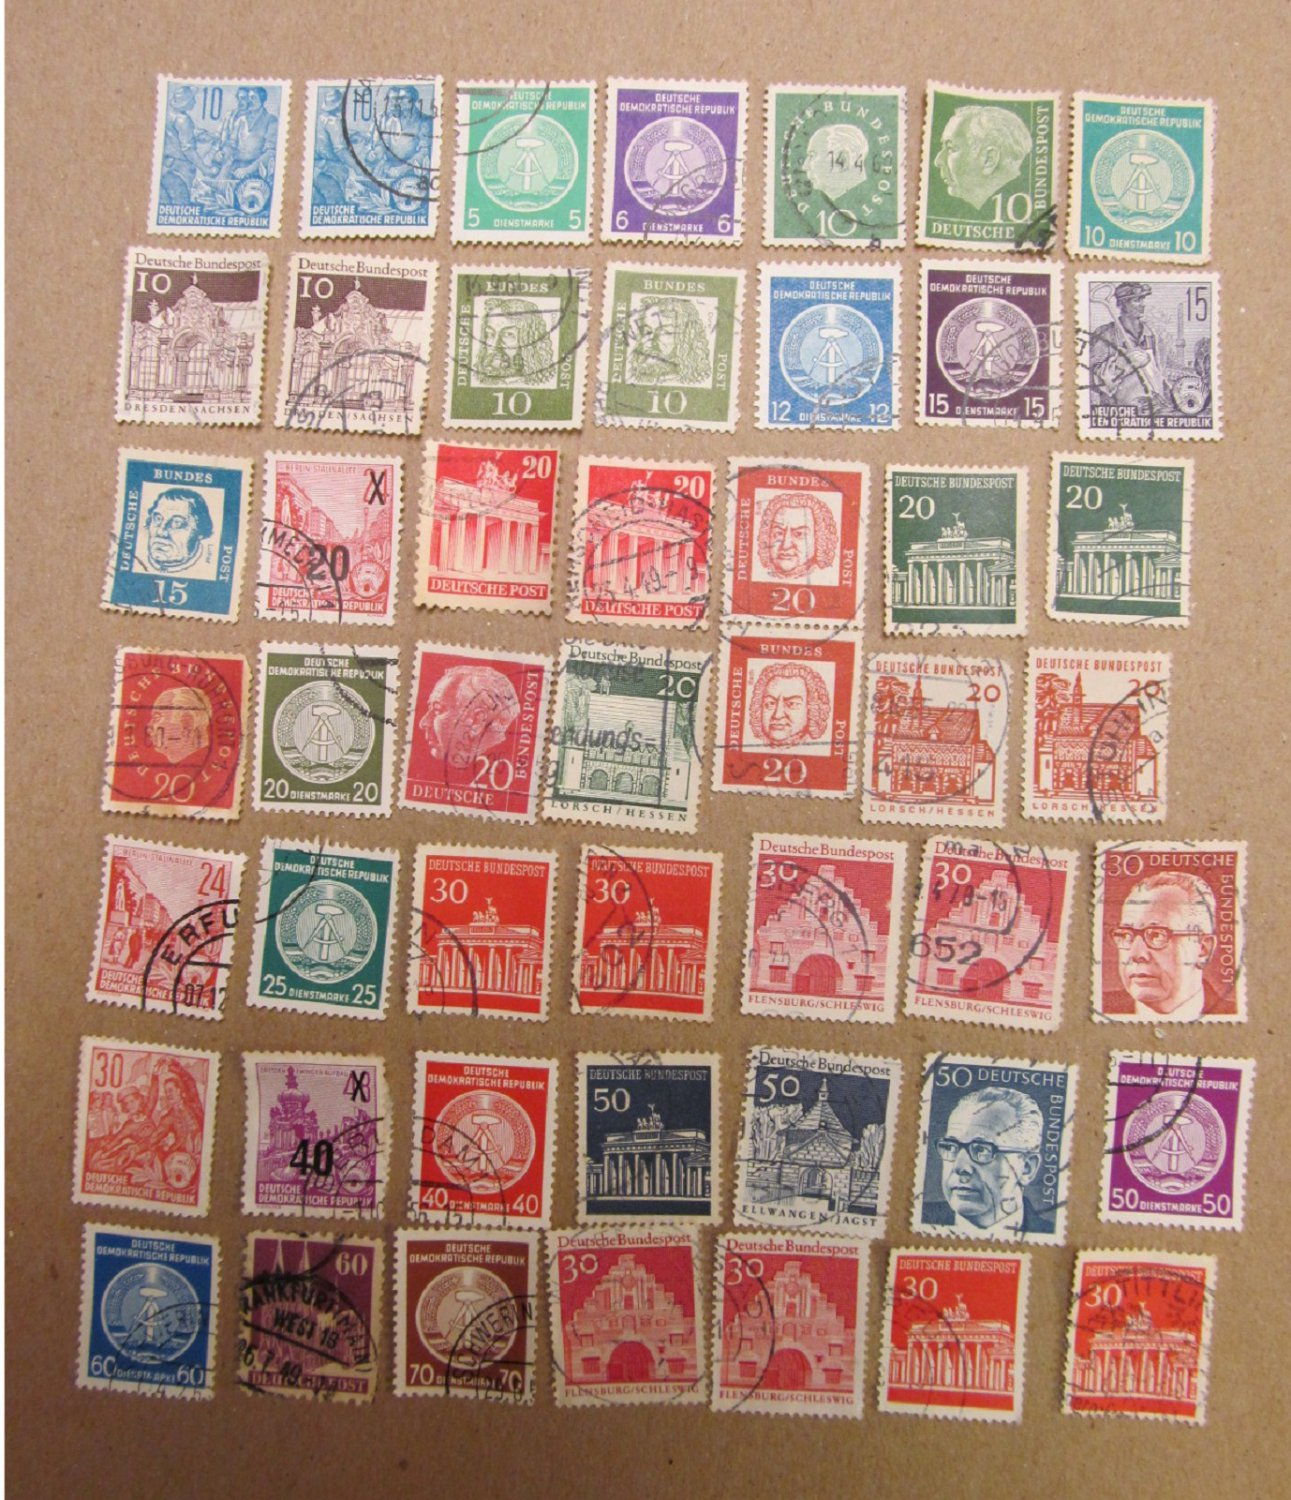 GERMANY COLLECTION OF OLD STAMPS 49 PIECES LOT 3